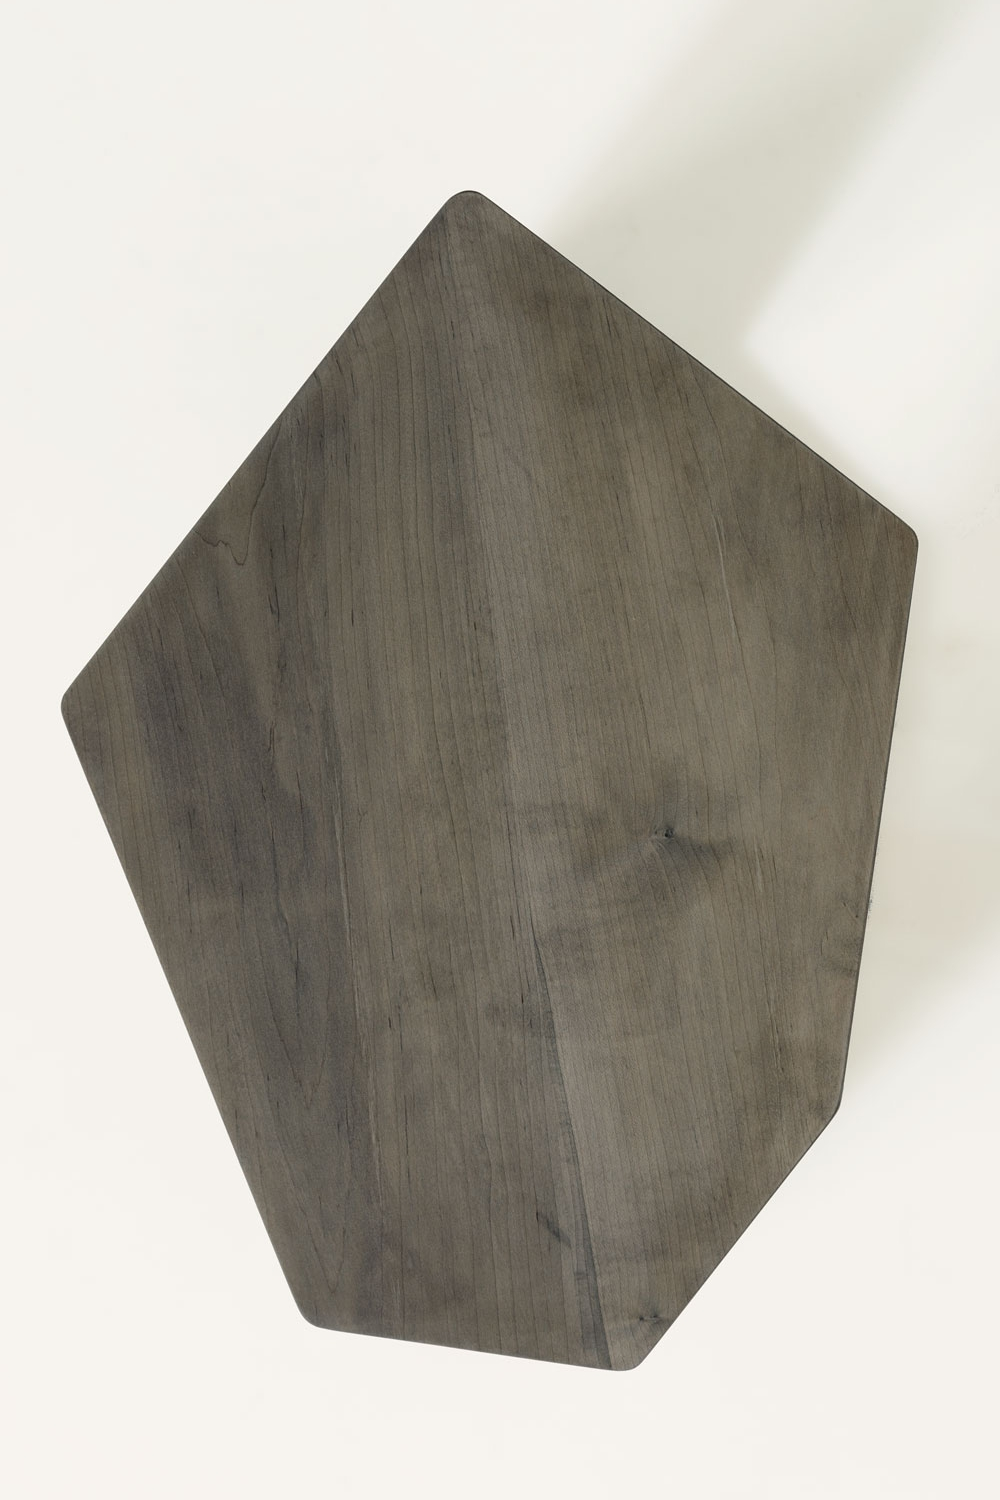 art-and-guile_atn-sidetable_oxidized-maple-top_1_2018.jpg